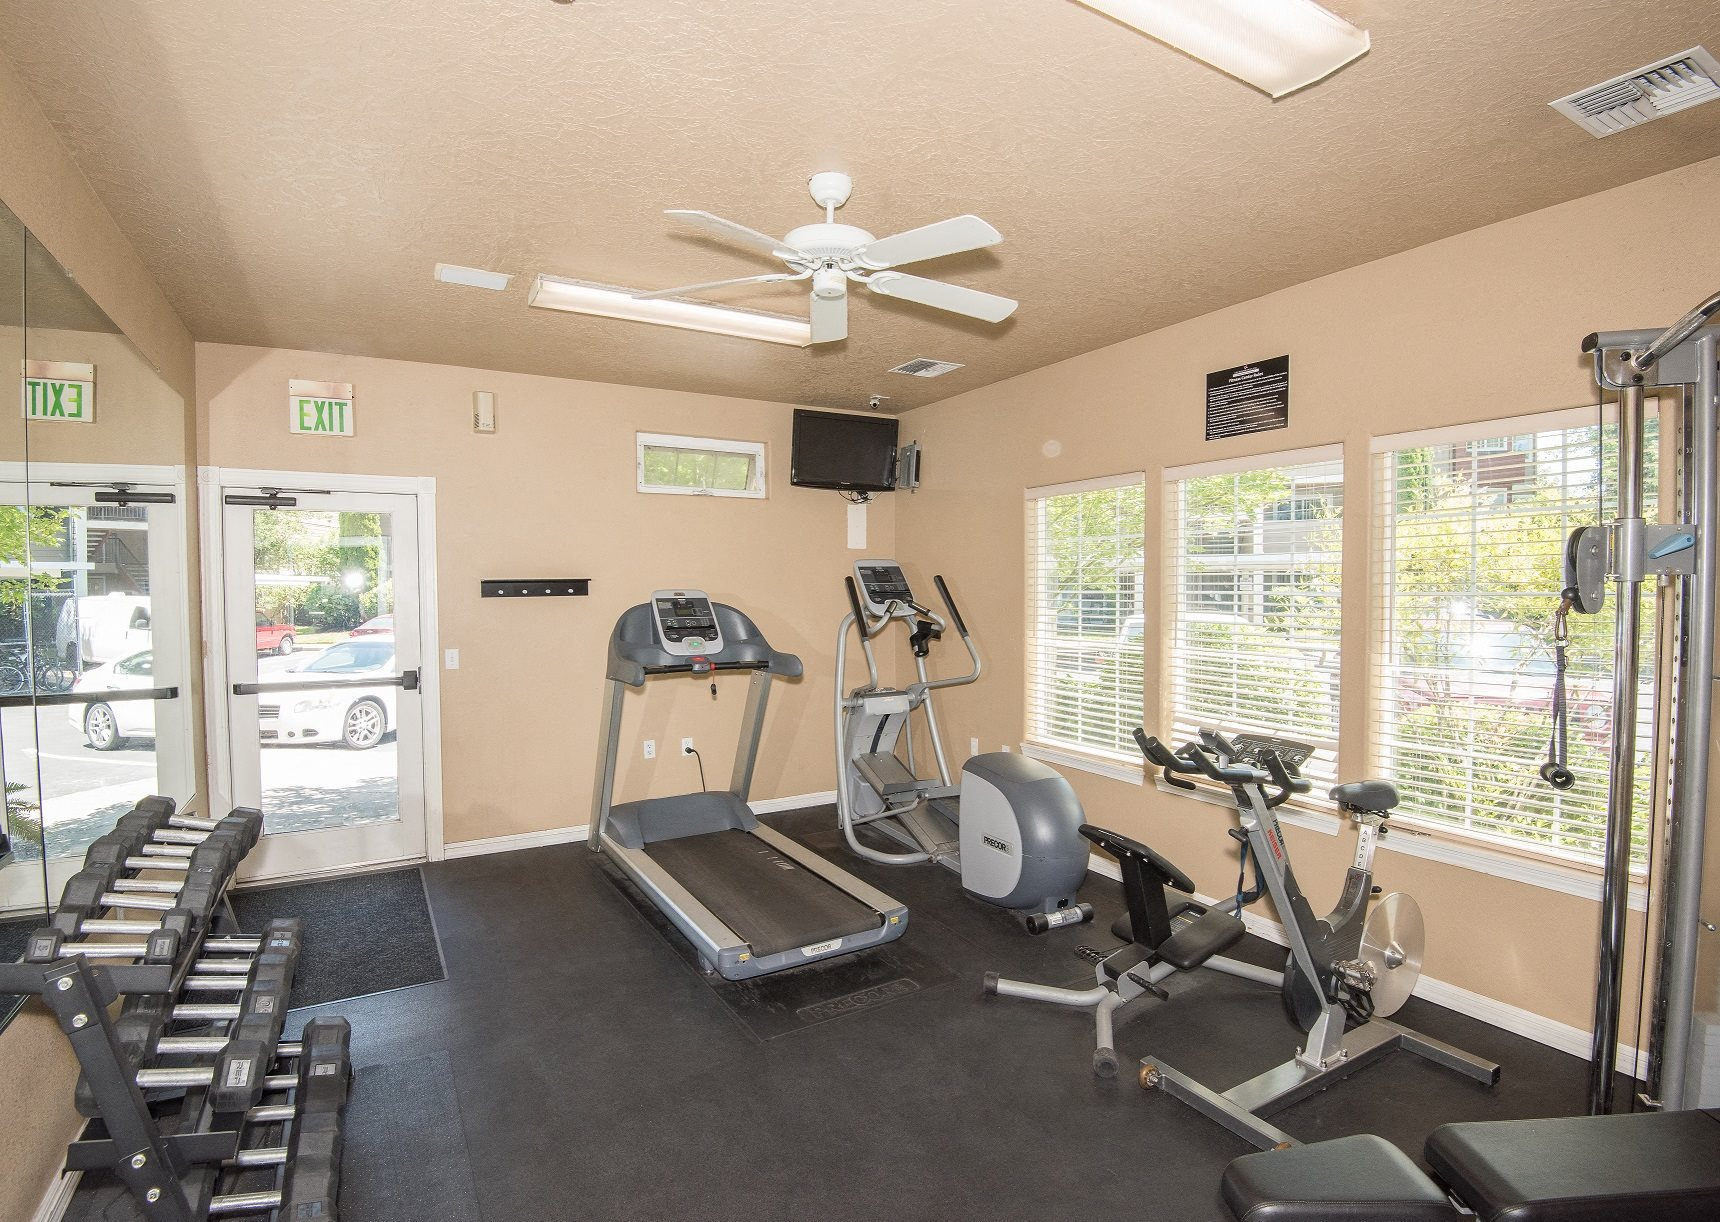 Valley River Court 24 Hour Fitness Center 2nd Angle